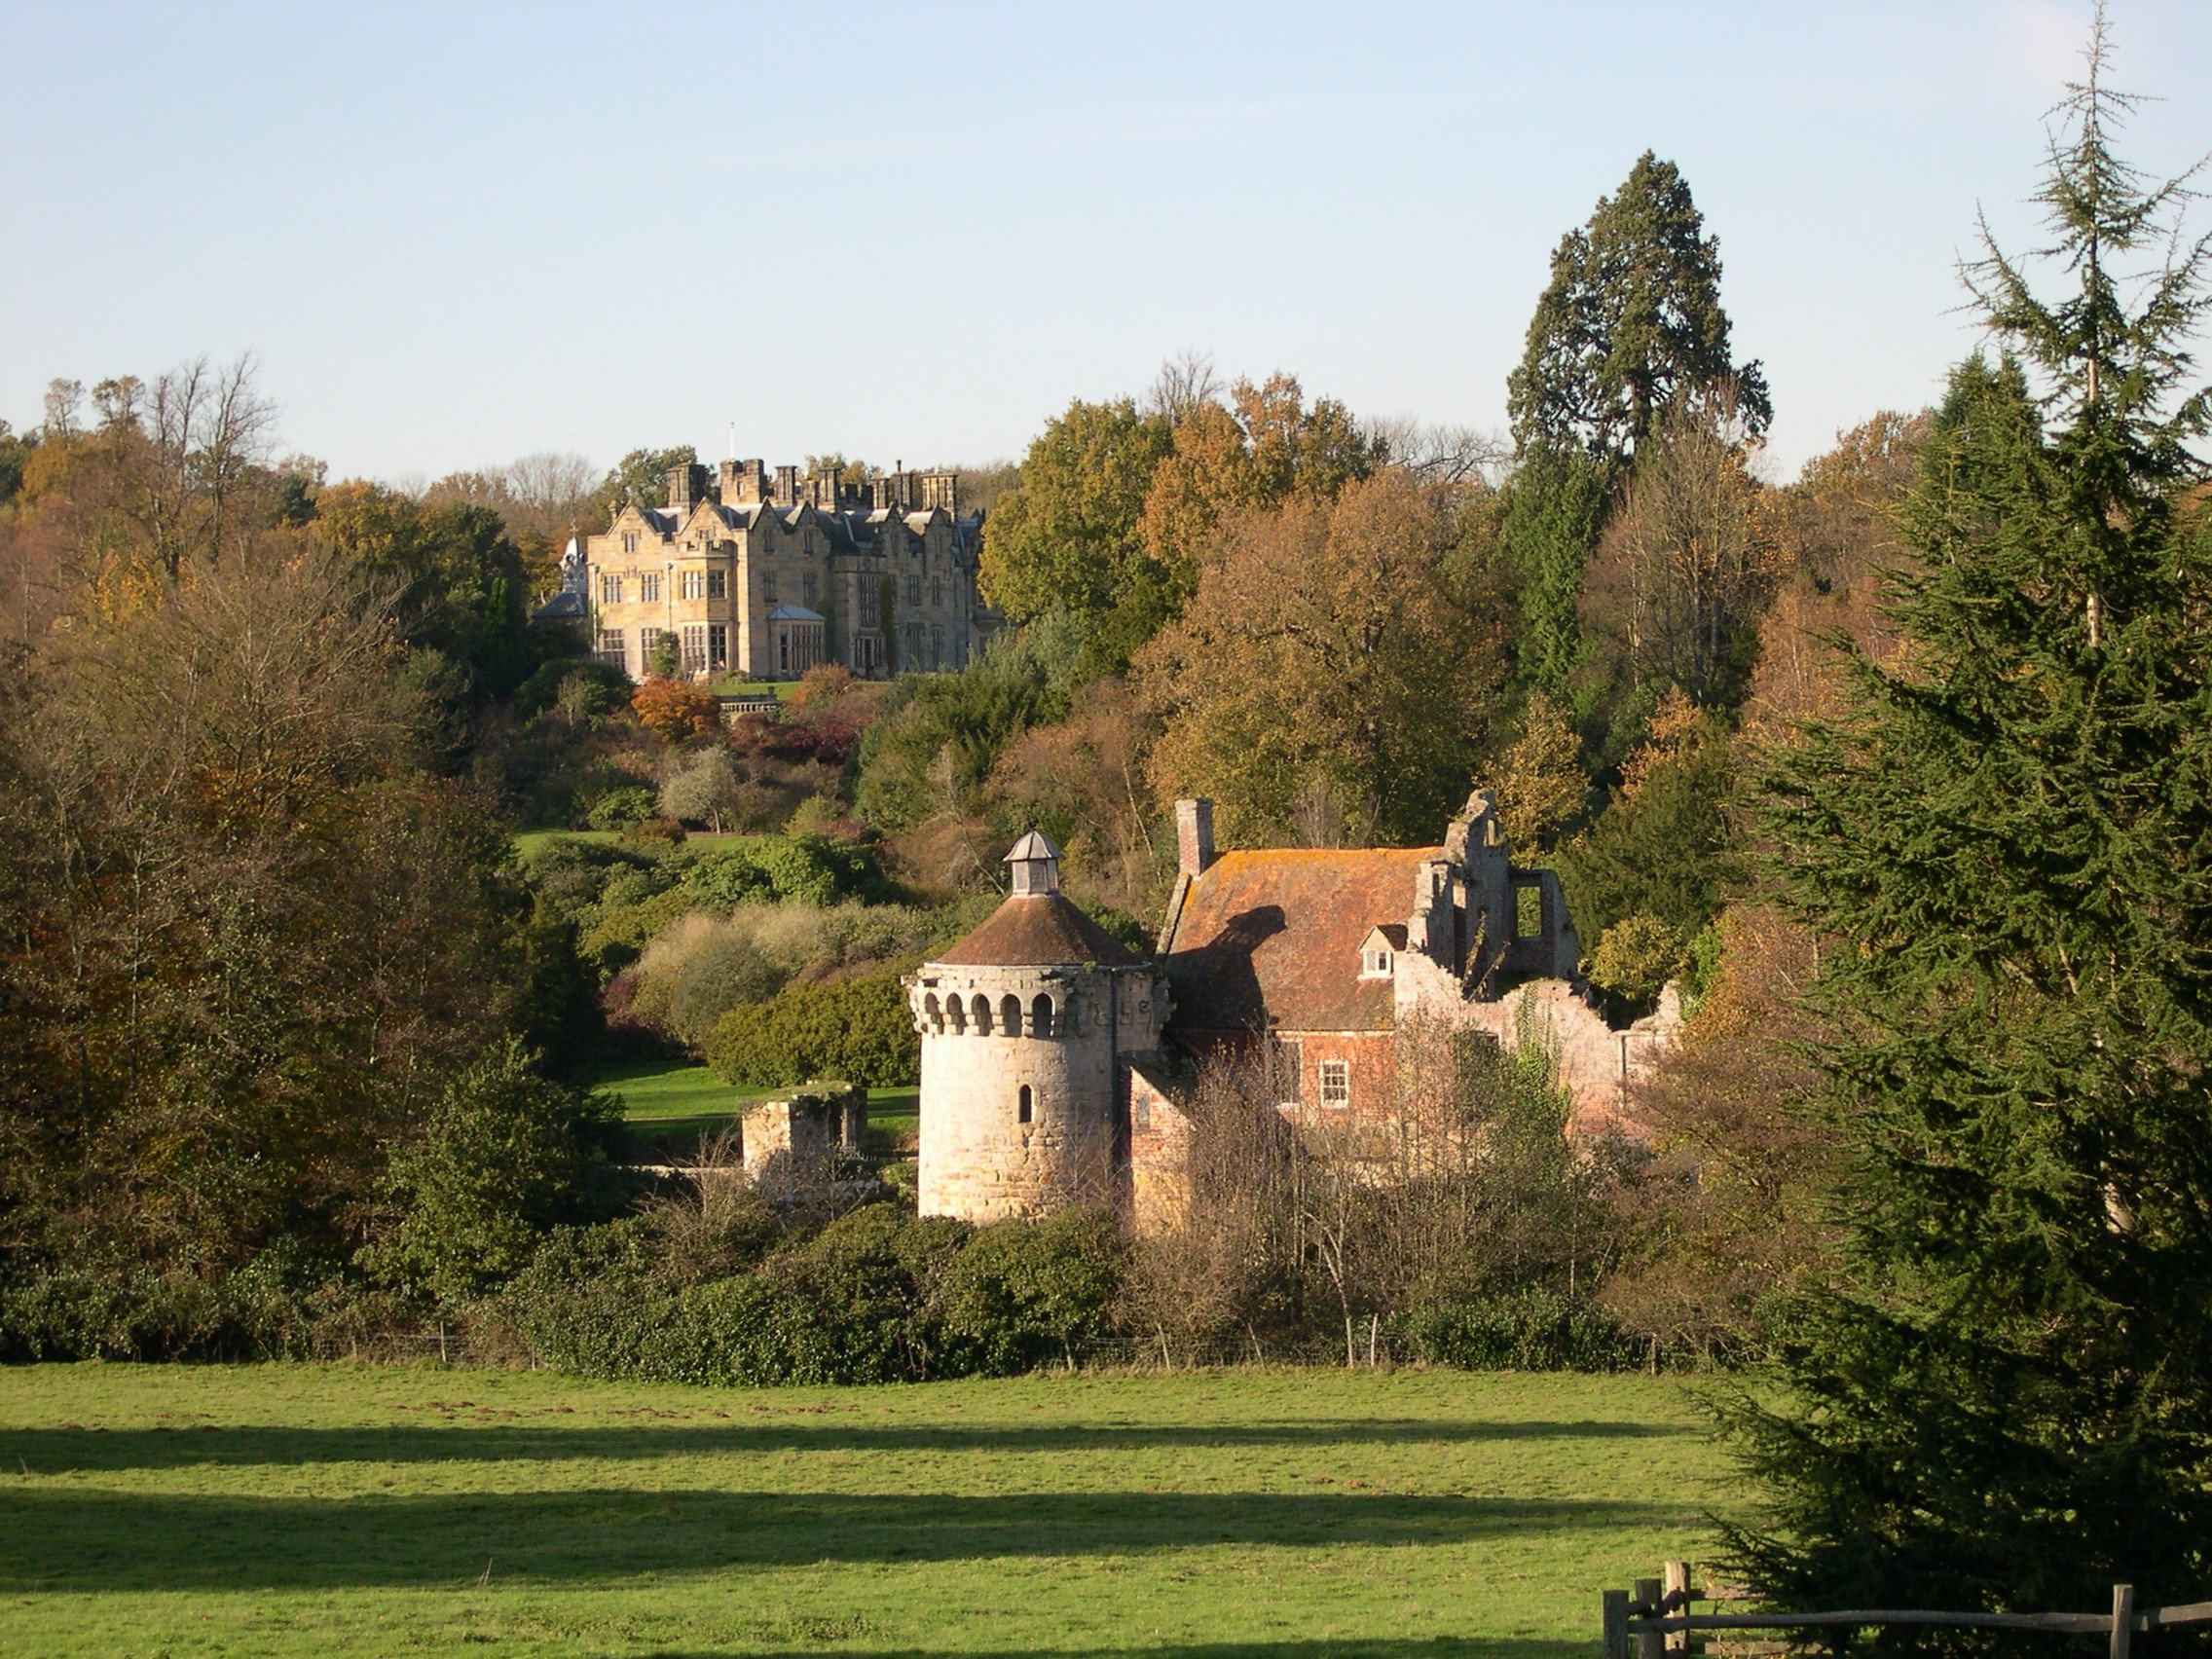 Places to go in kent for free